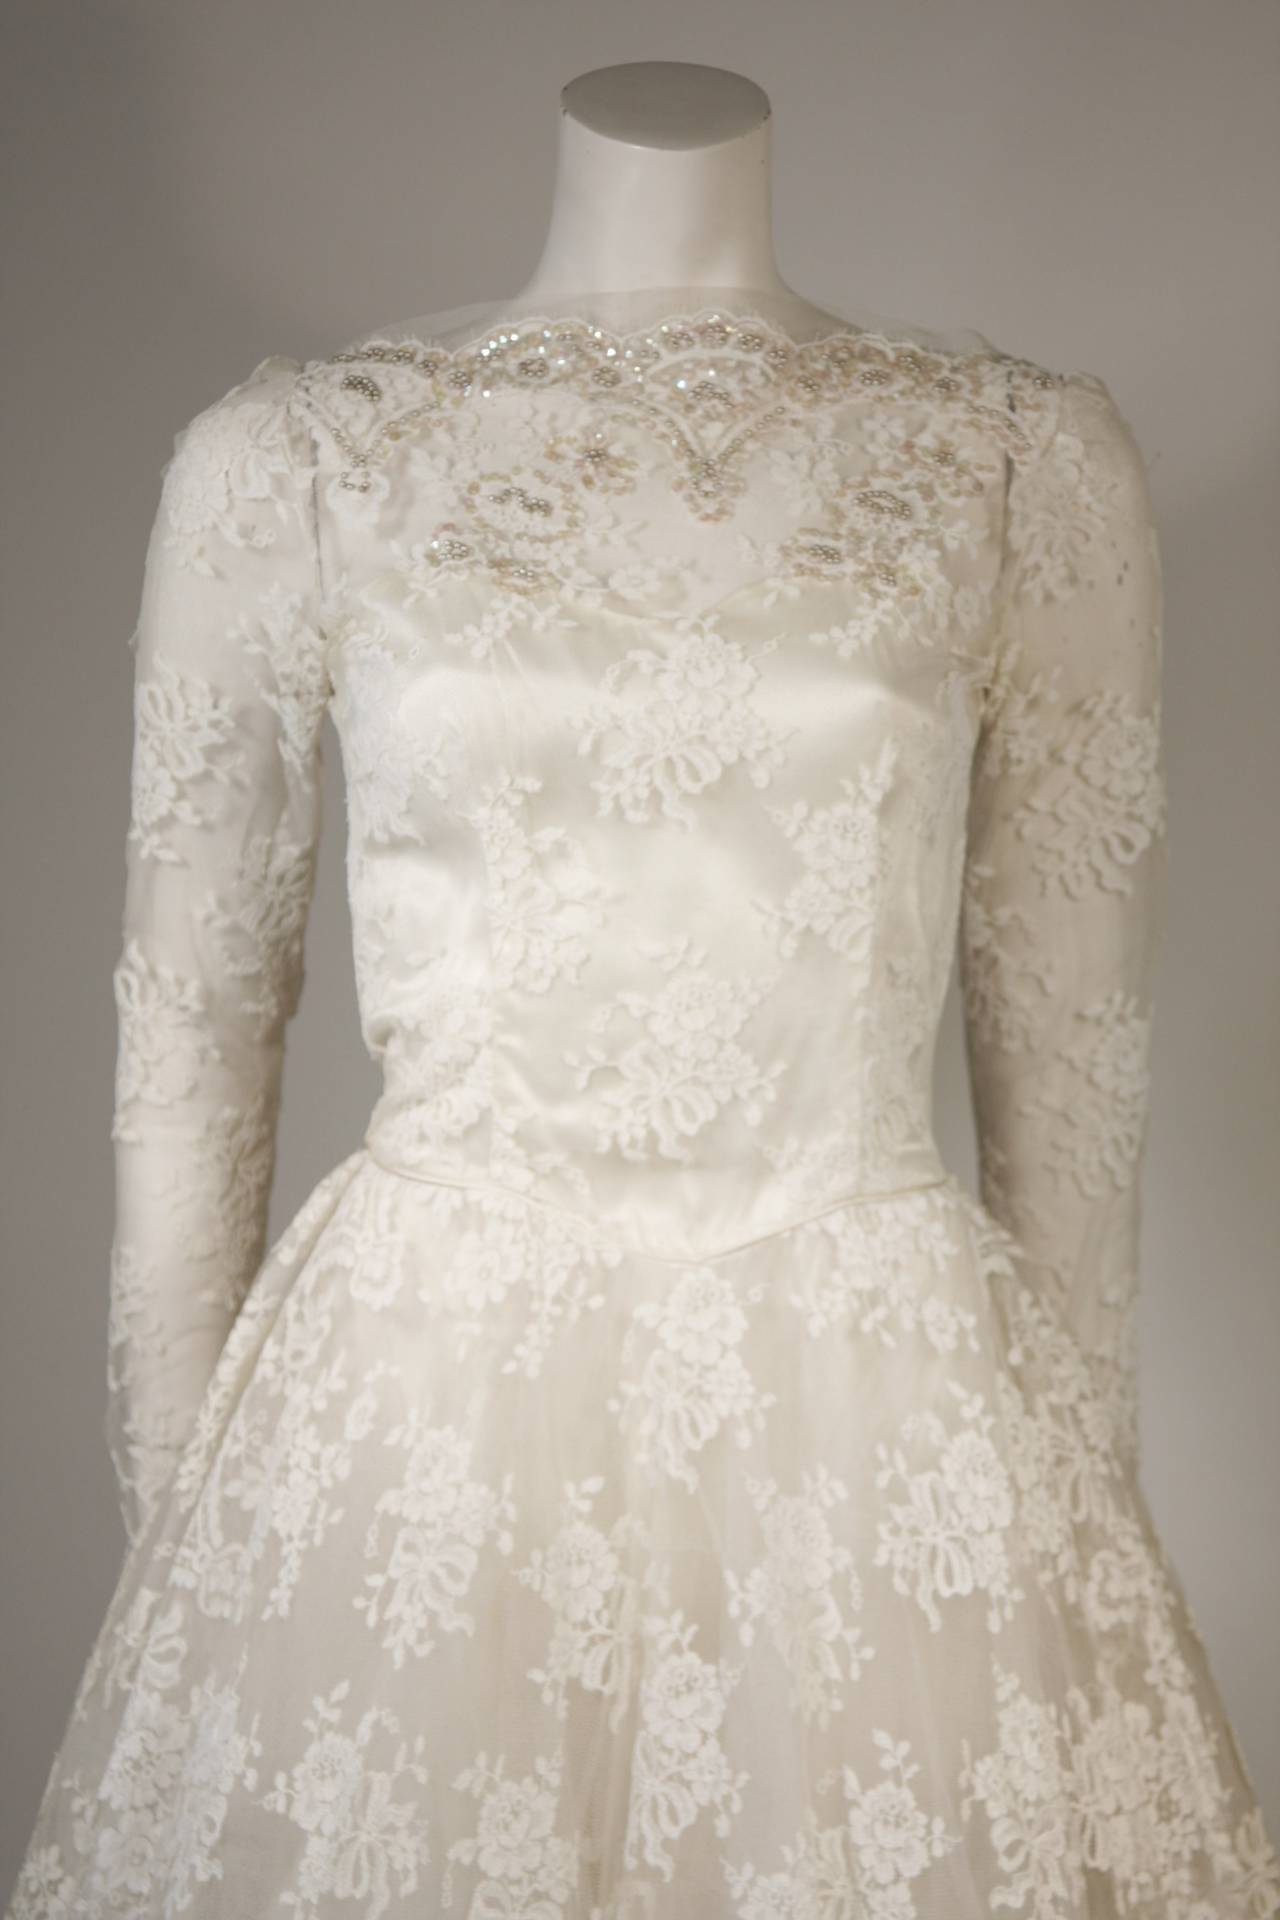 Women's Vintage Lace Wedding Gown with Scalloped Edges and Long Sleeves Size Small For Sale